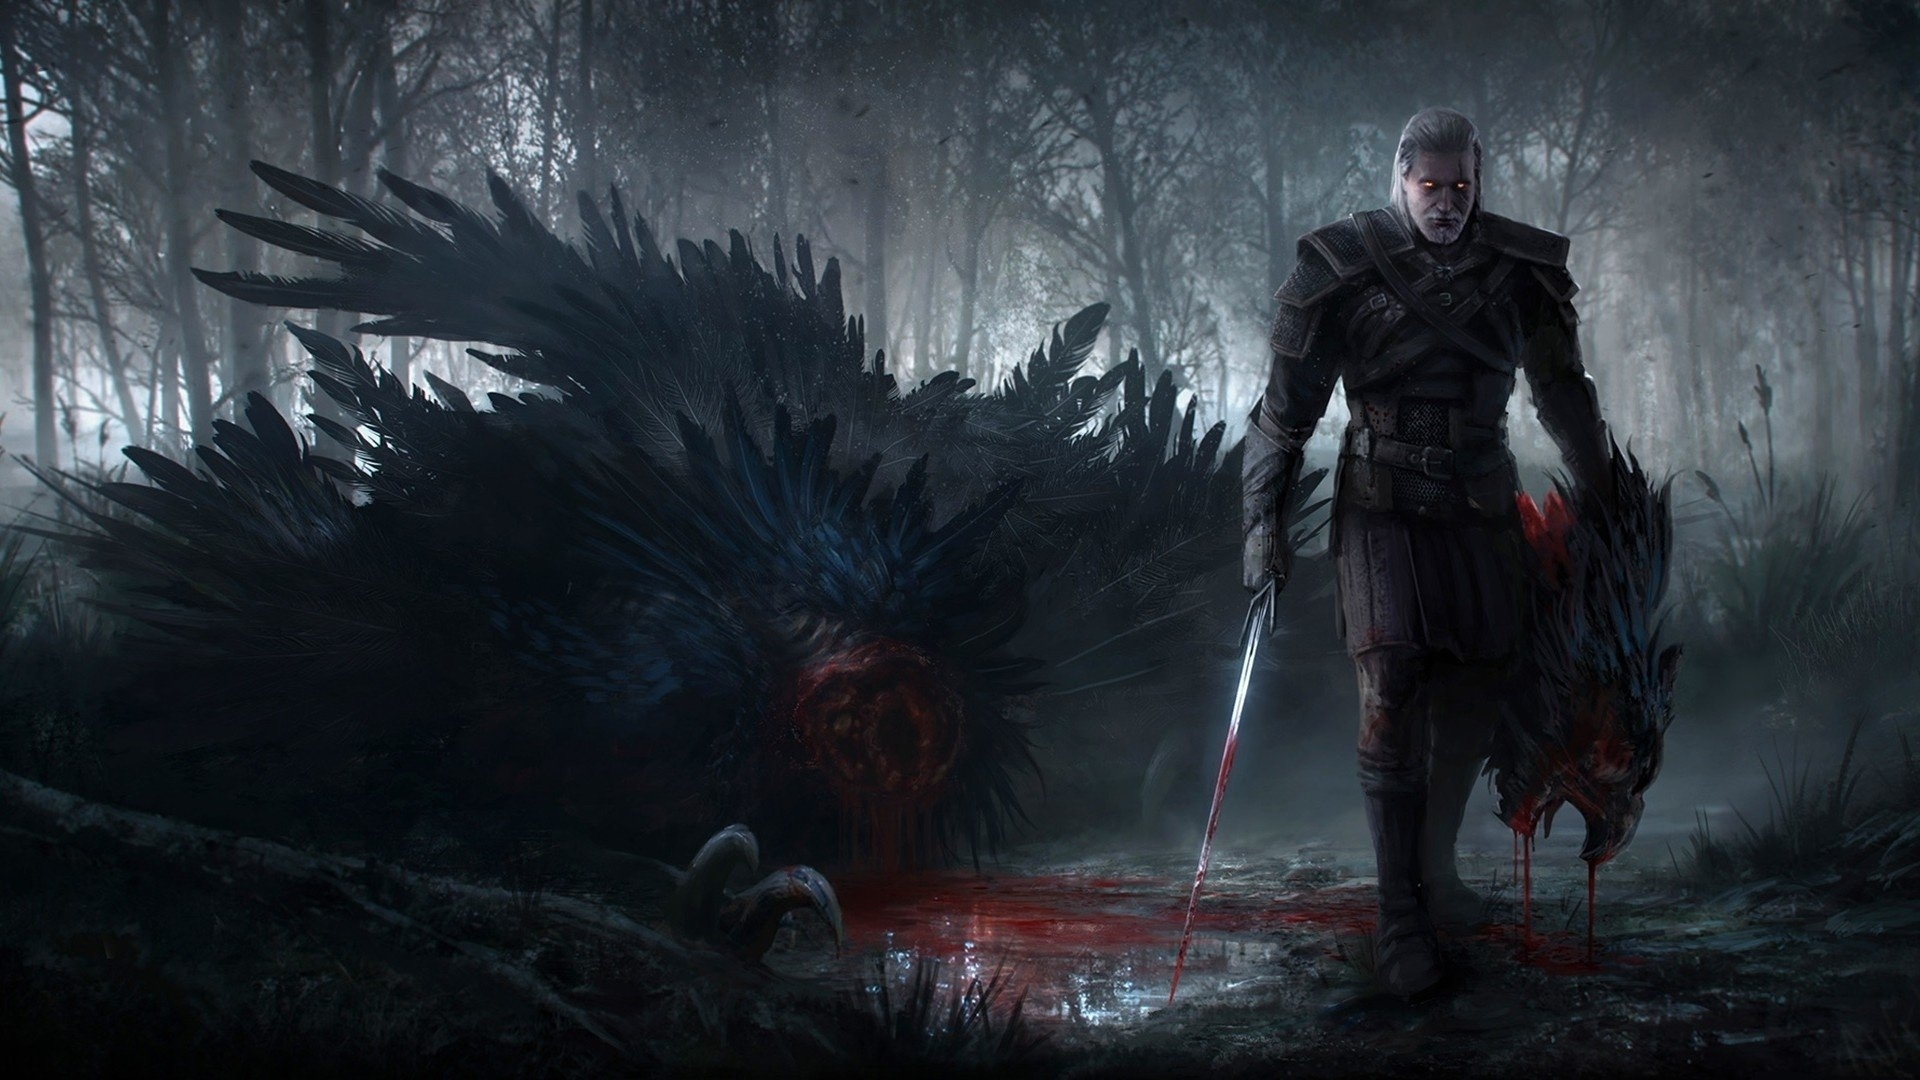 the witcher 3: wild hunt full hd fond d'écran and arrière-plan